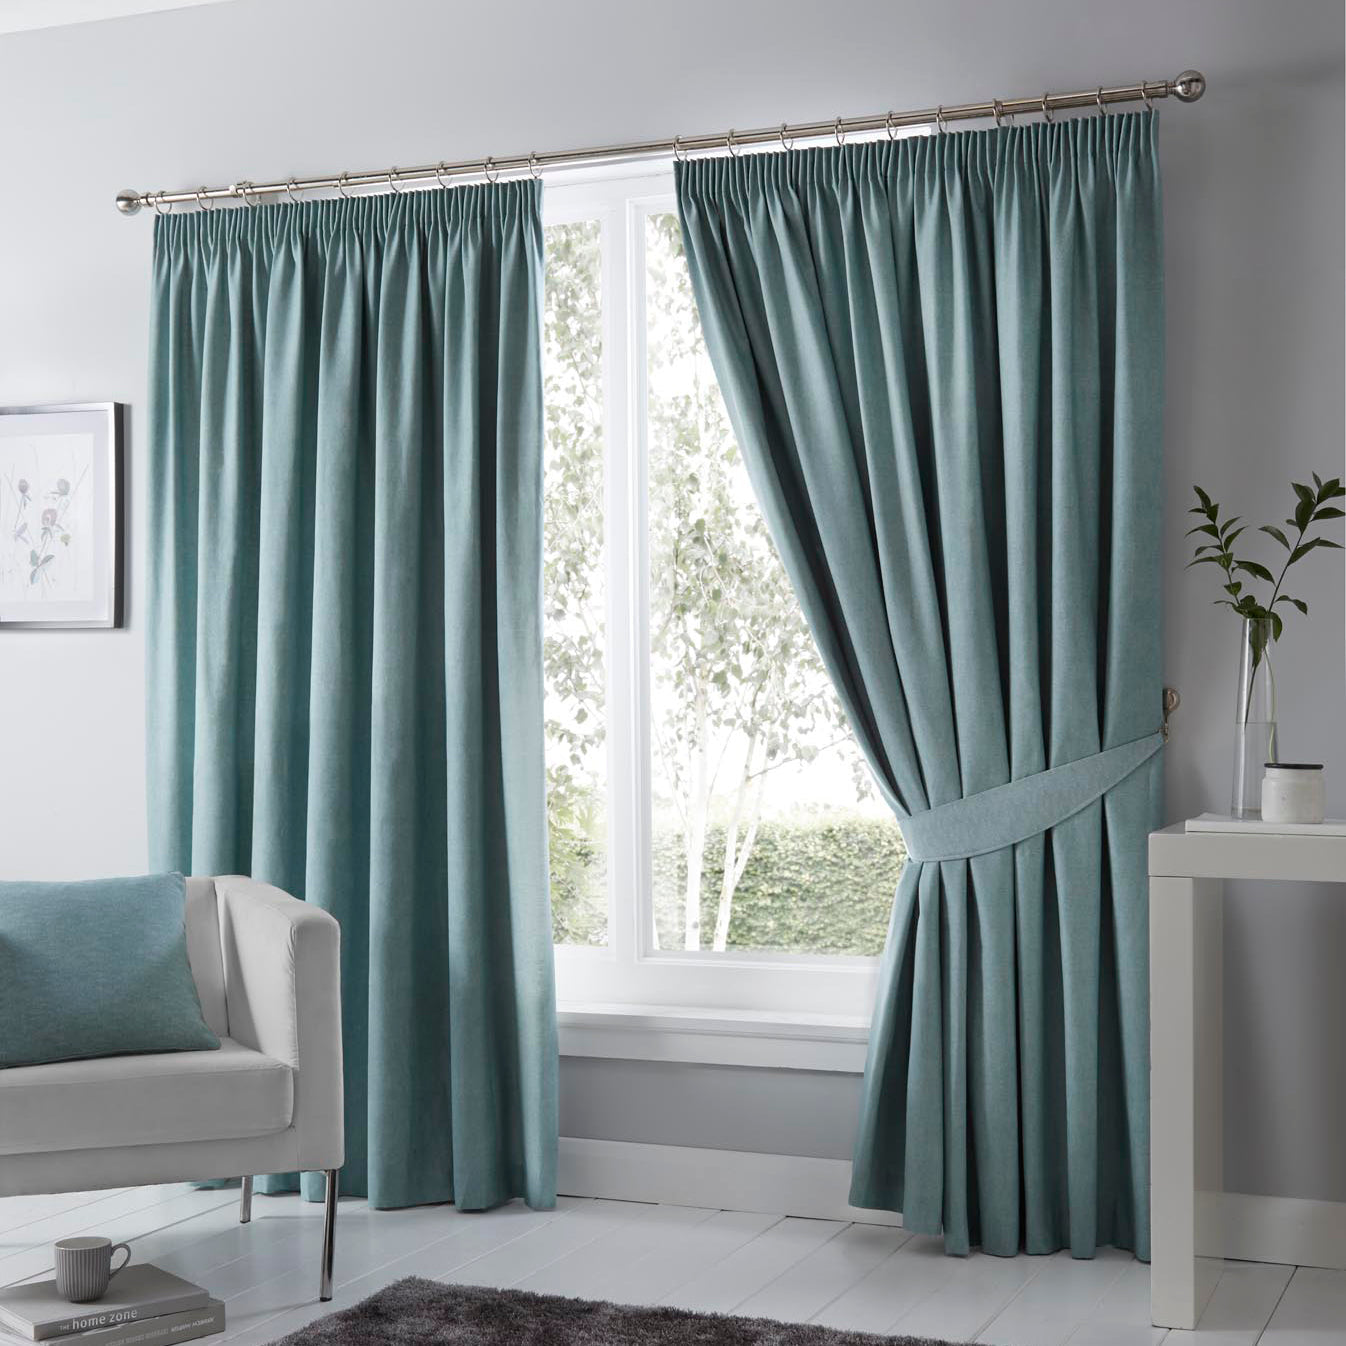 J Rosenthal Ready Made Curtains Dijon Ready Made Blackout Curtains Duckegg Picture